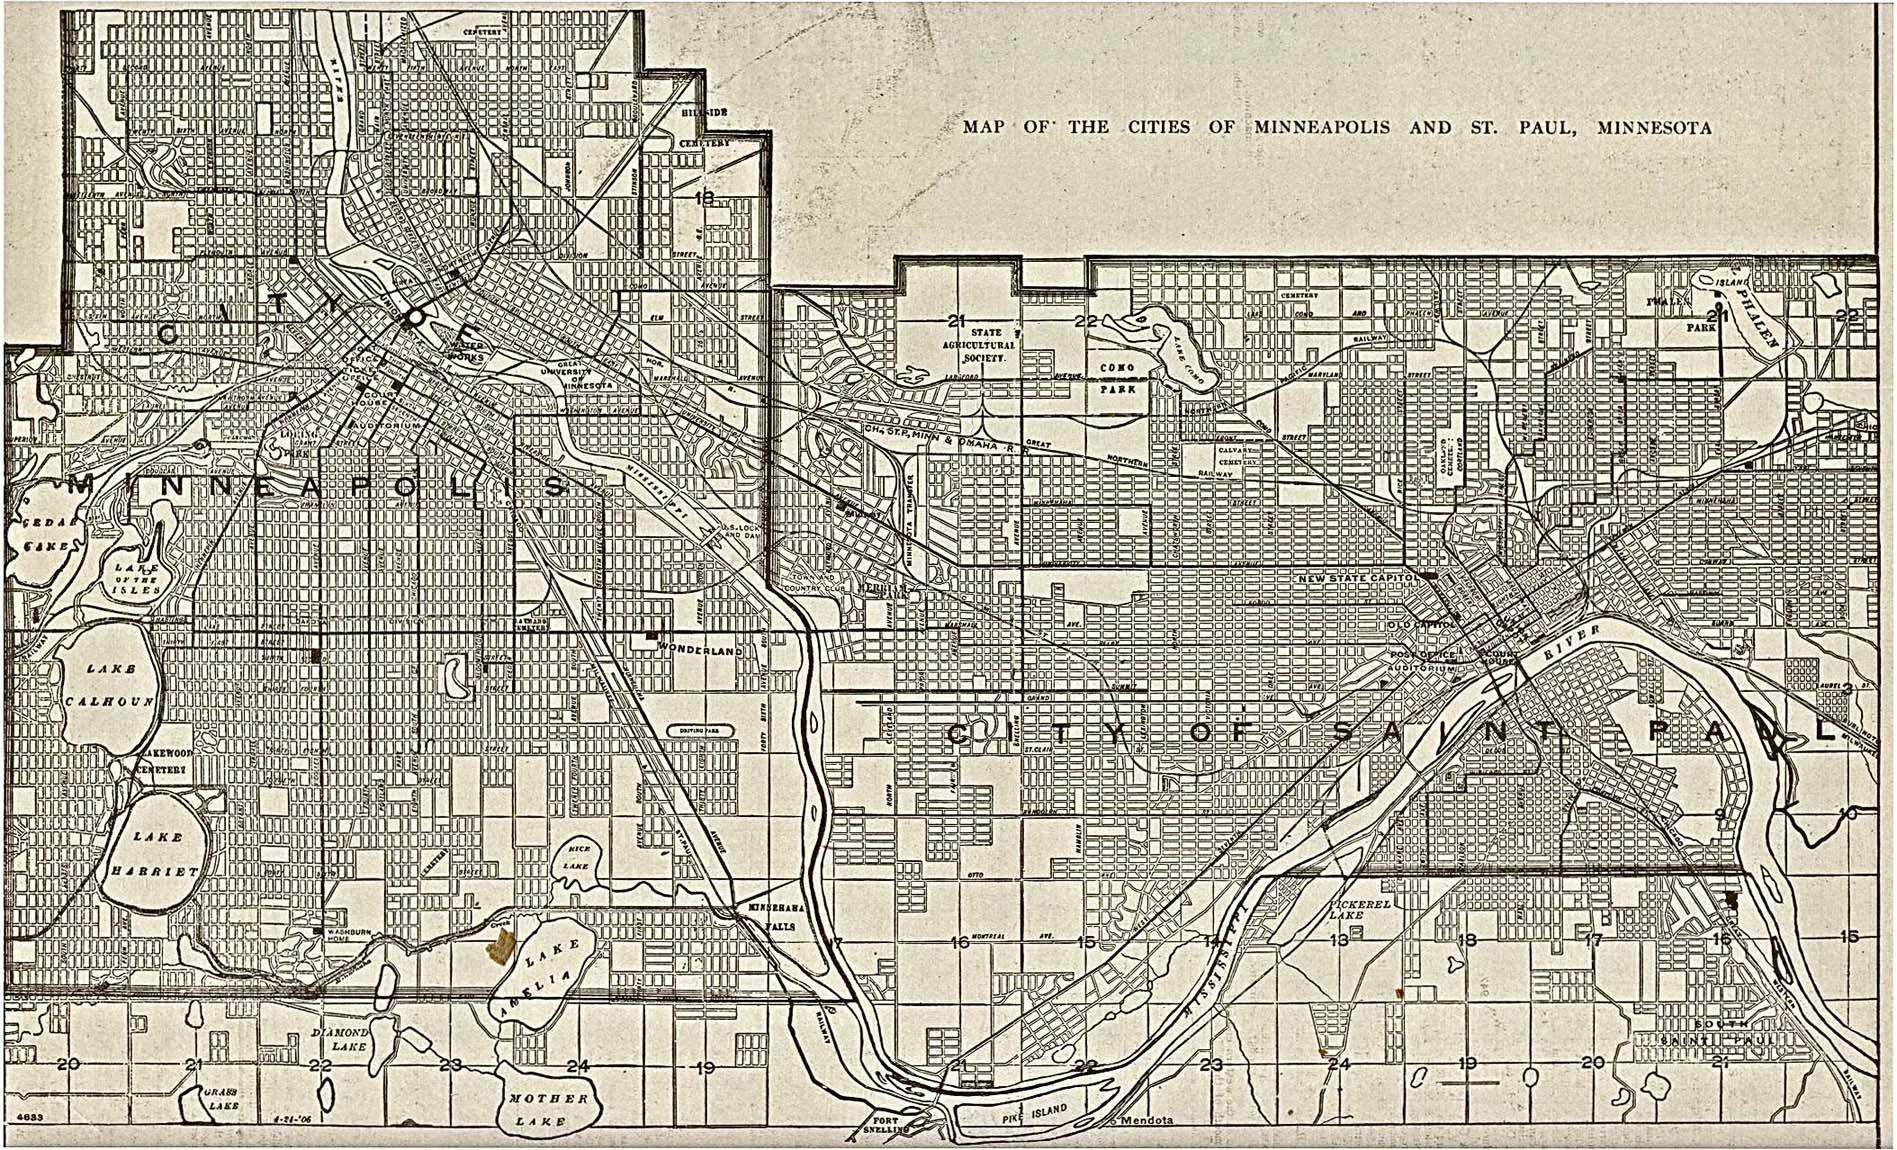 Minneapolis Map, Minnesota, United States 1906